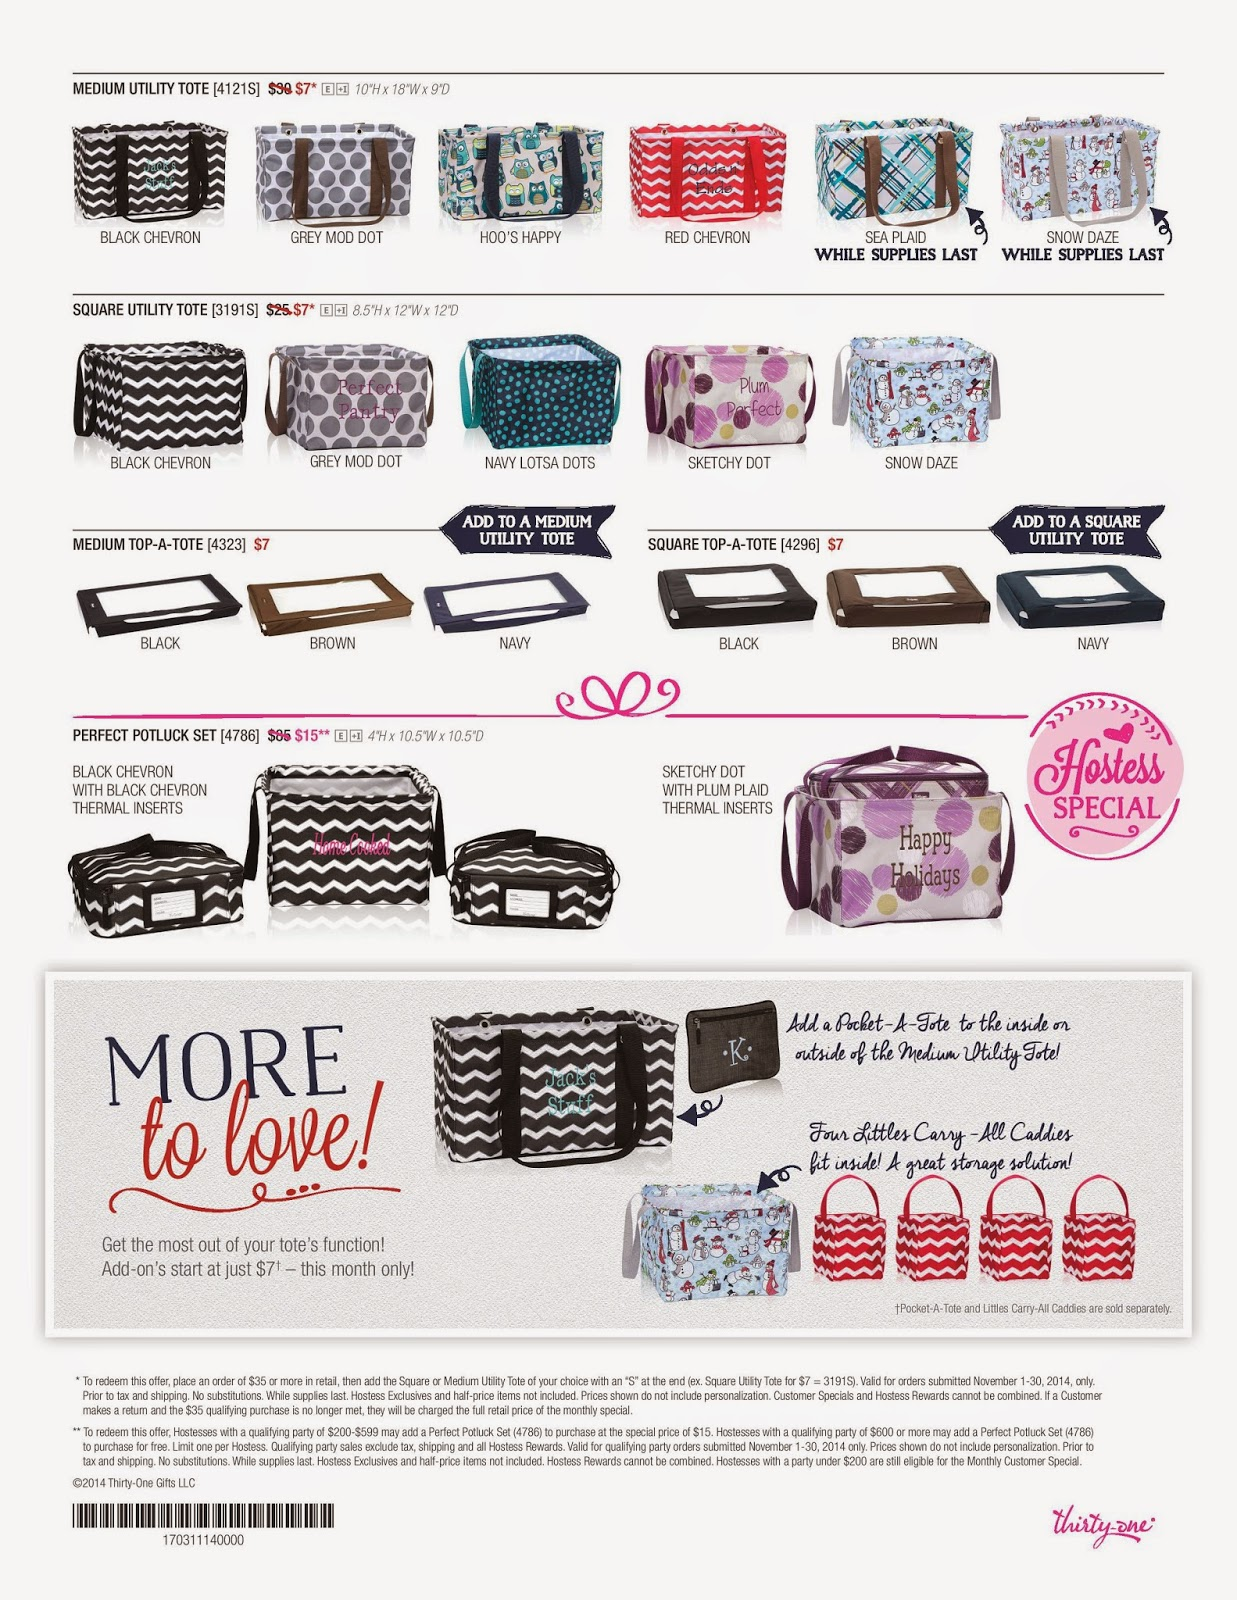 Thirty one november customer special 2014 - Friday November 7 2014